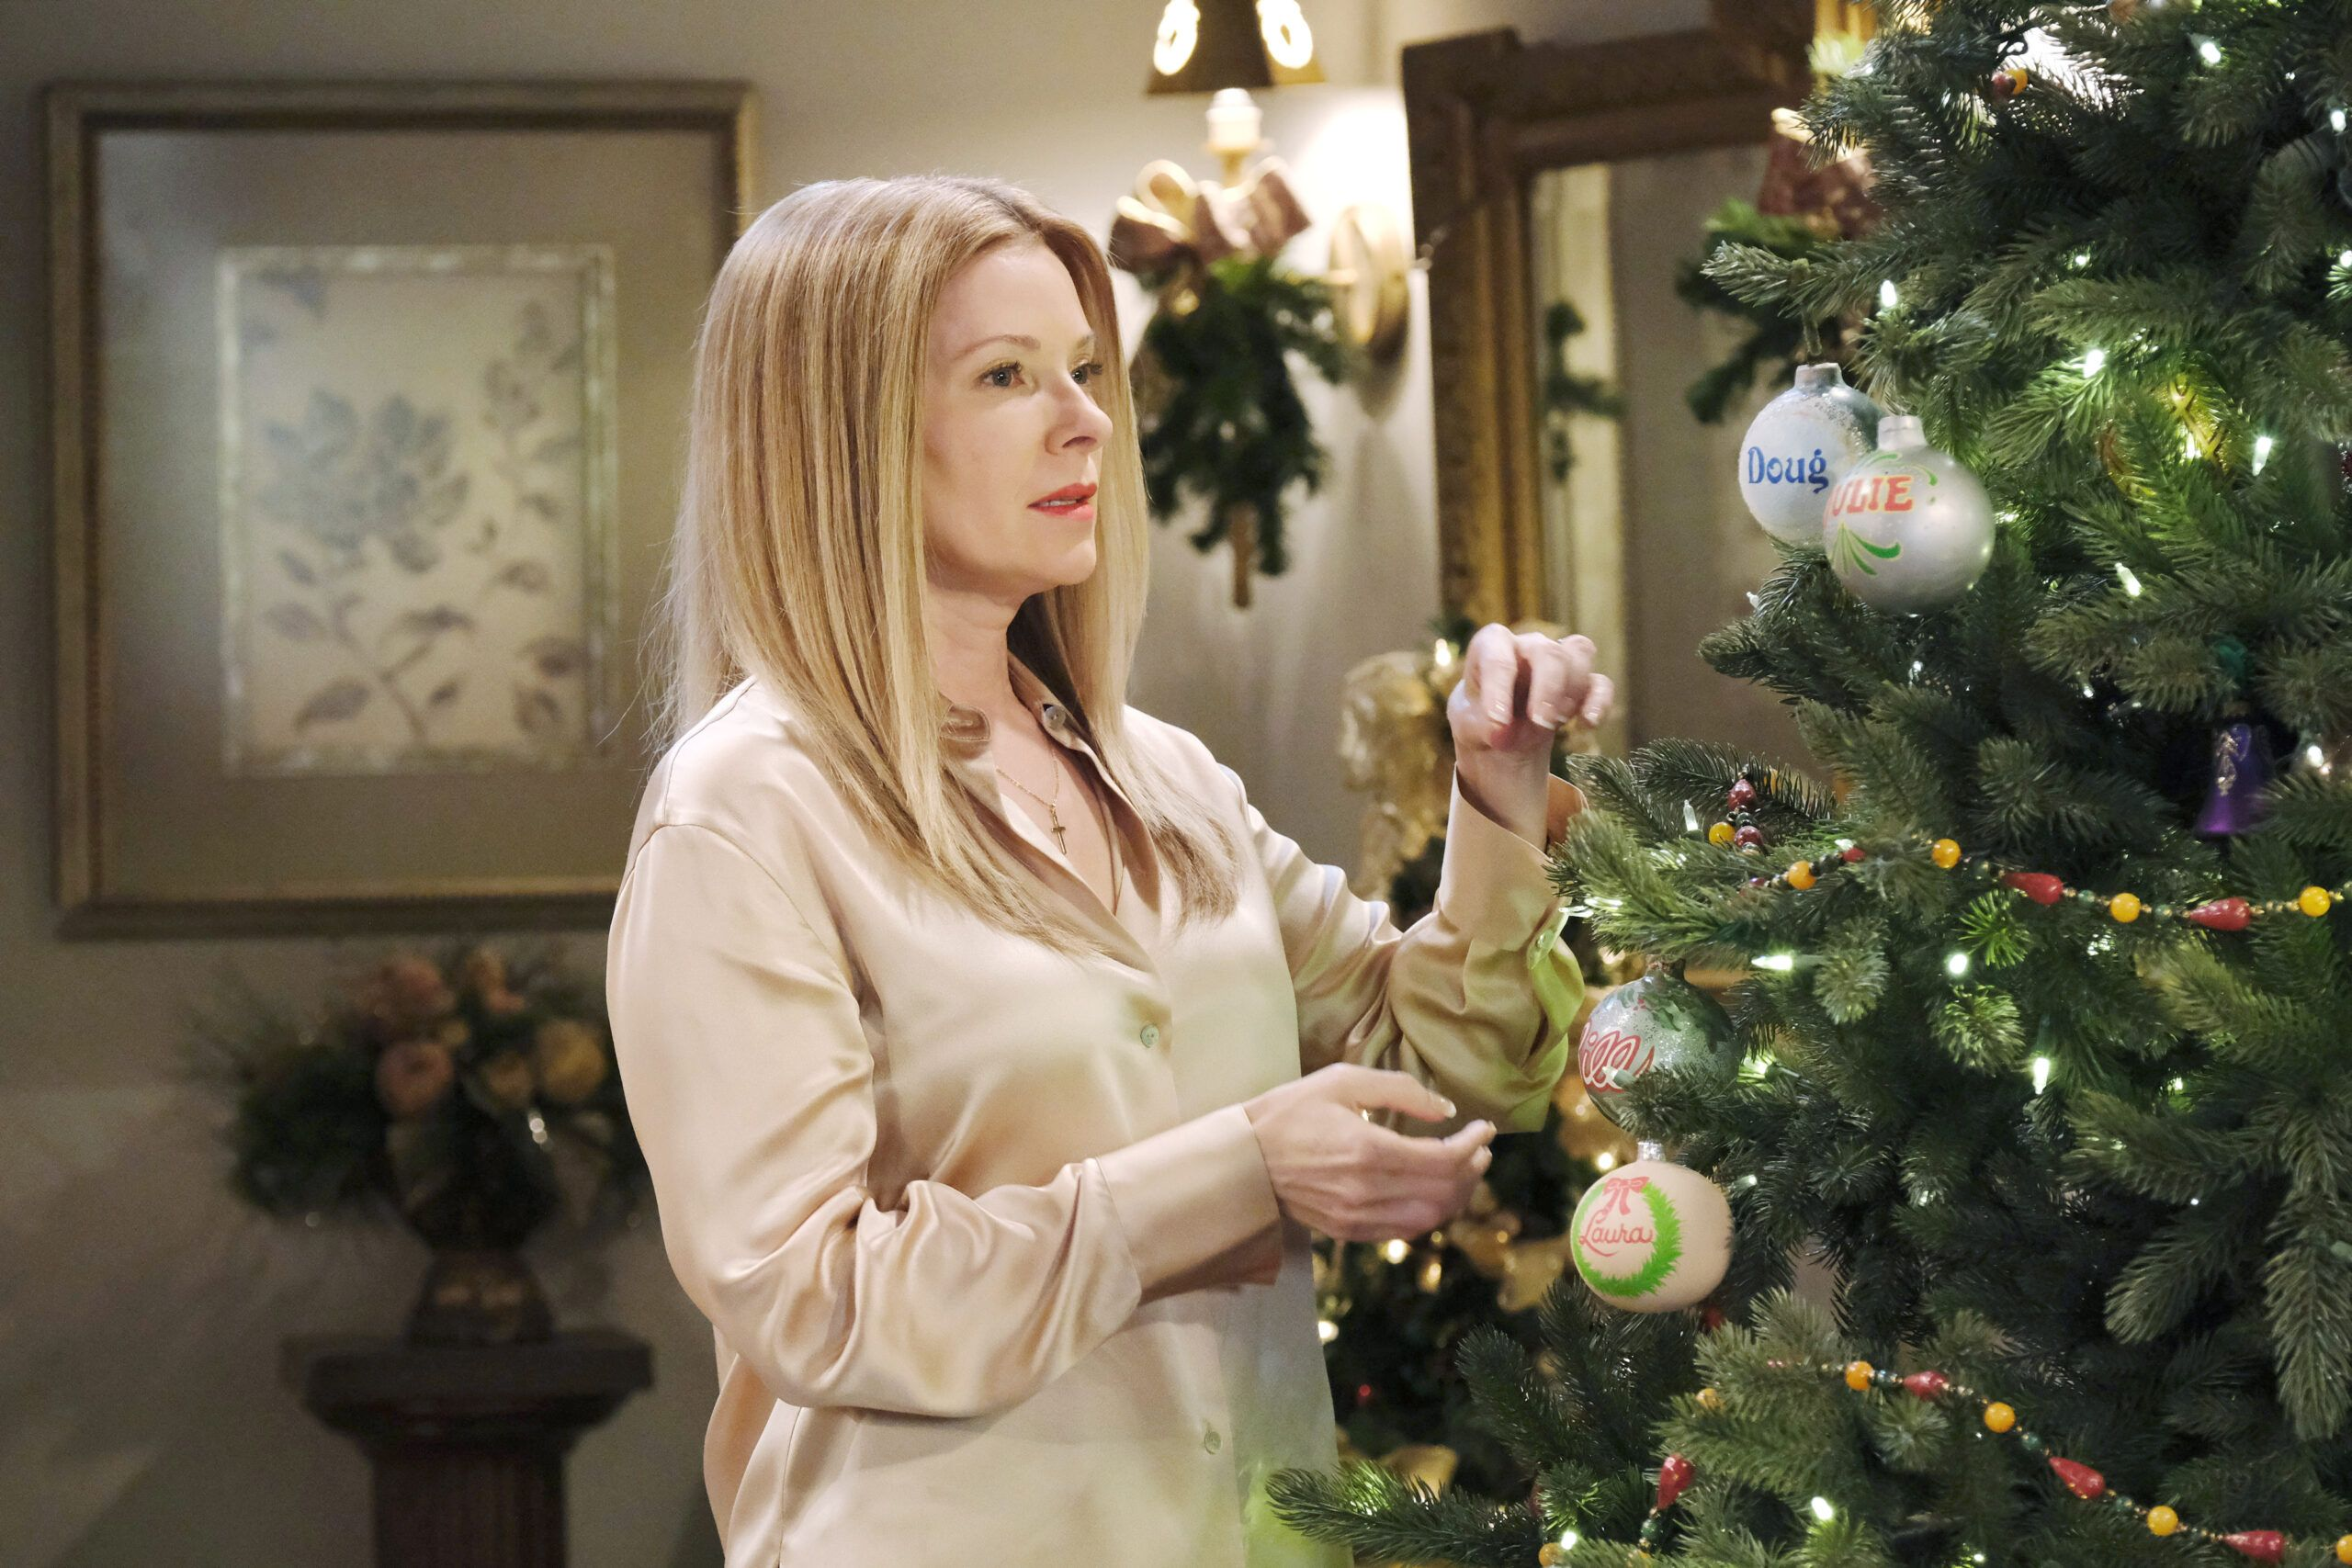 Christmas Day 2021 Days Of Our Lives Days Of Our Lives Plotline Predictions For The Next Two Weeks December 21 2020 January 1 2021 Fame10